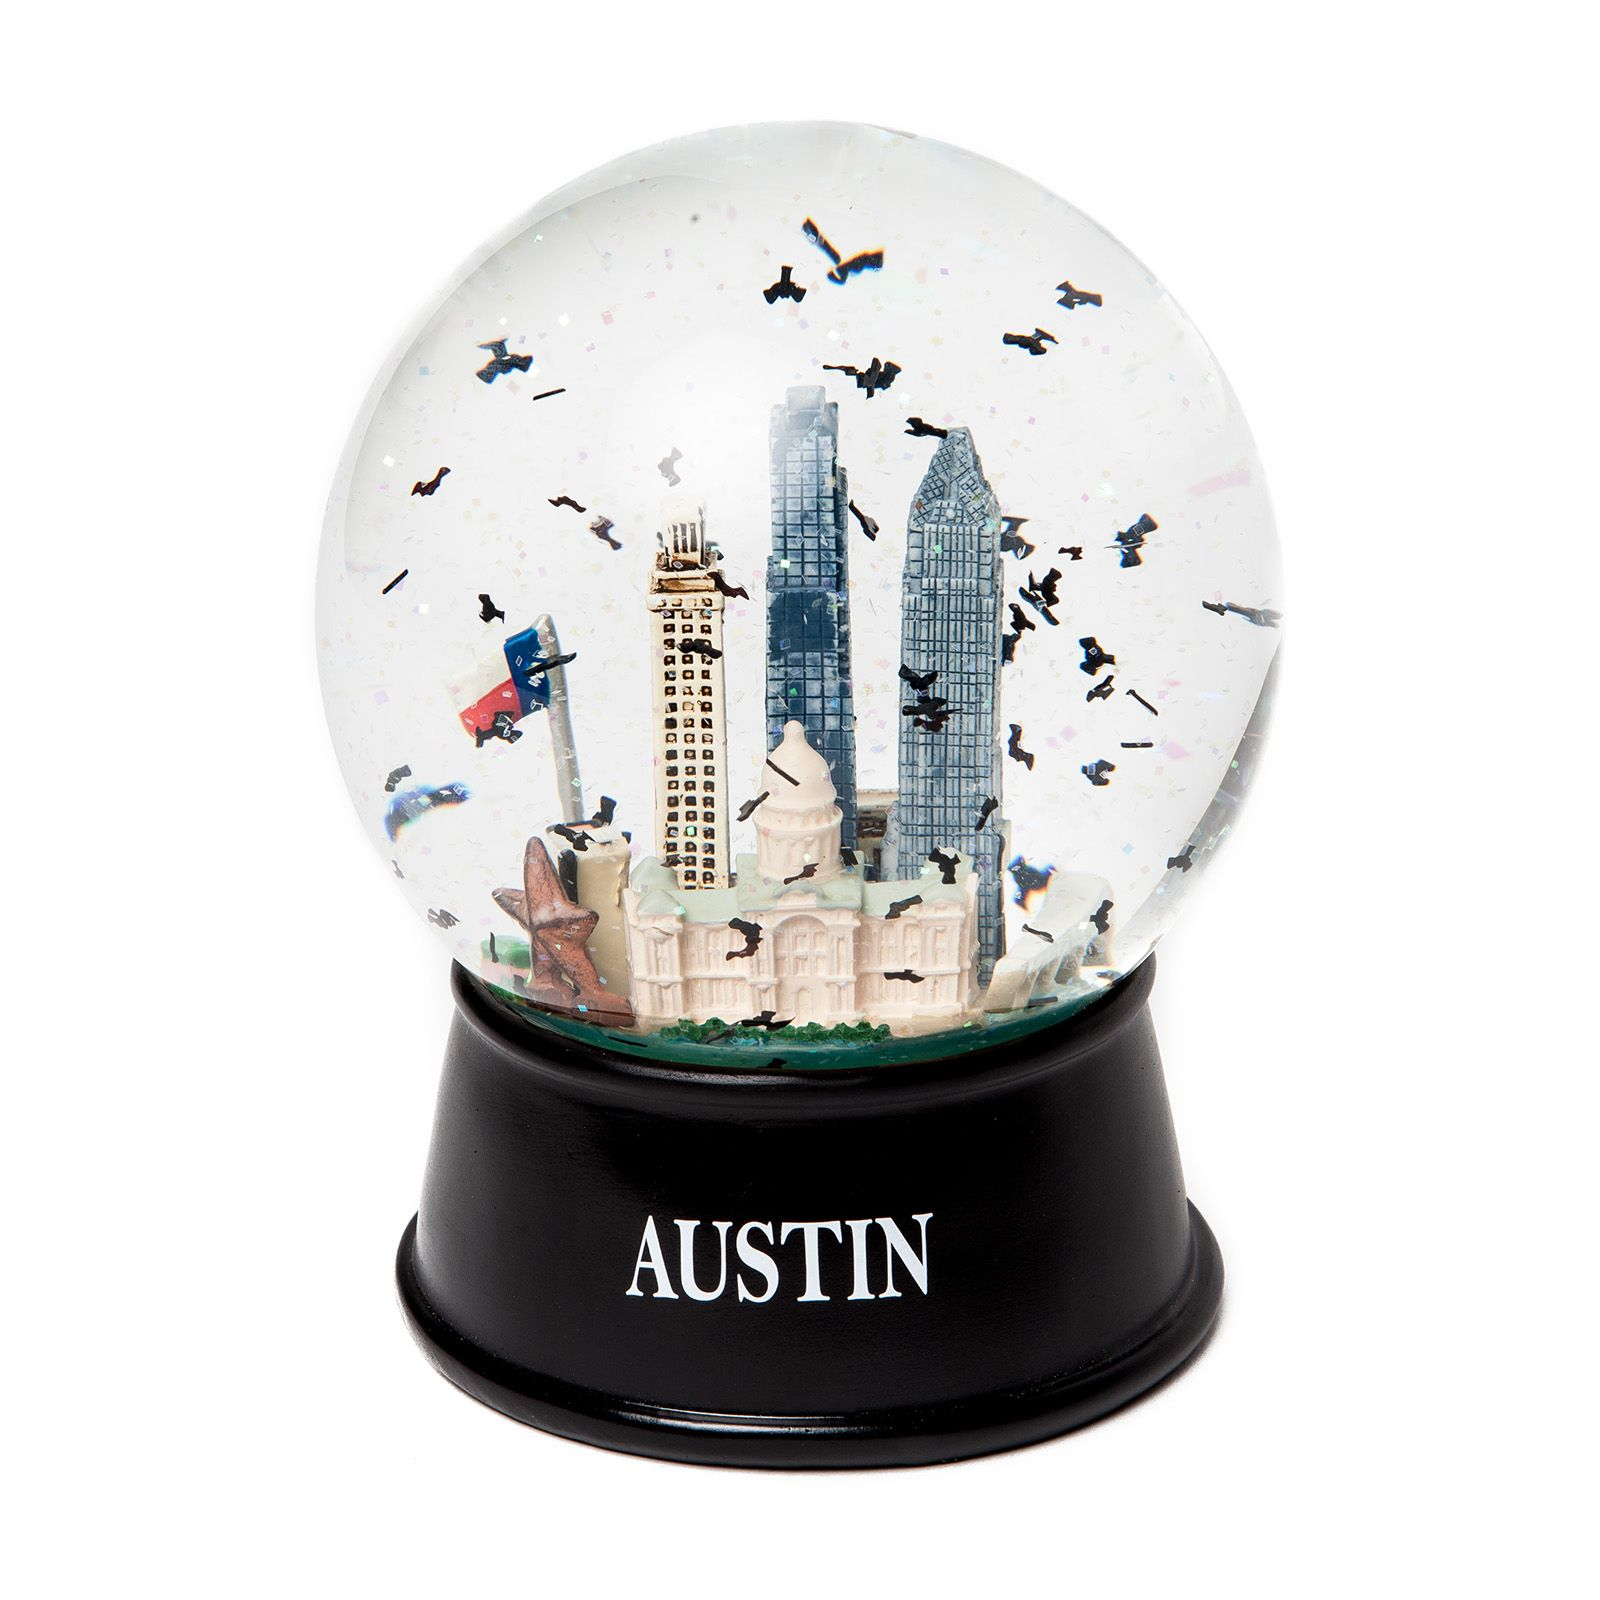 austin glitter and bats large glass snow globe ... WJNYYPV